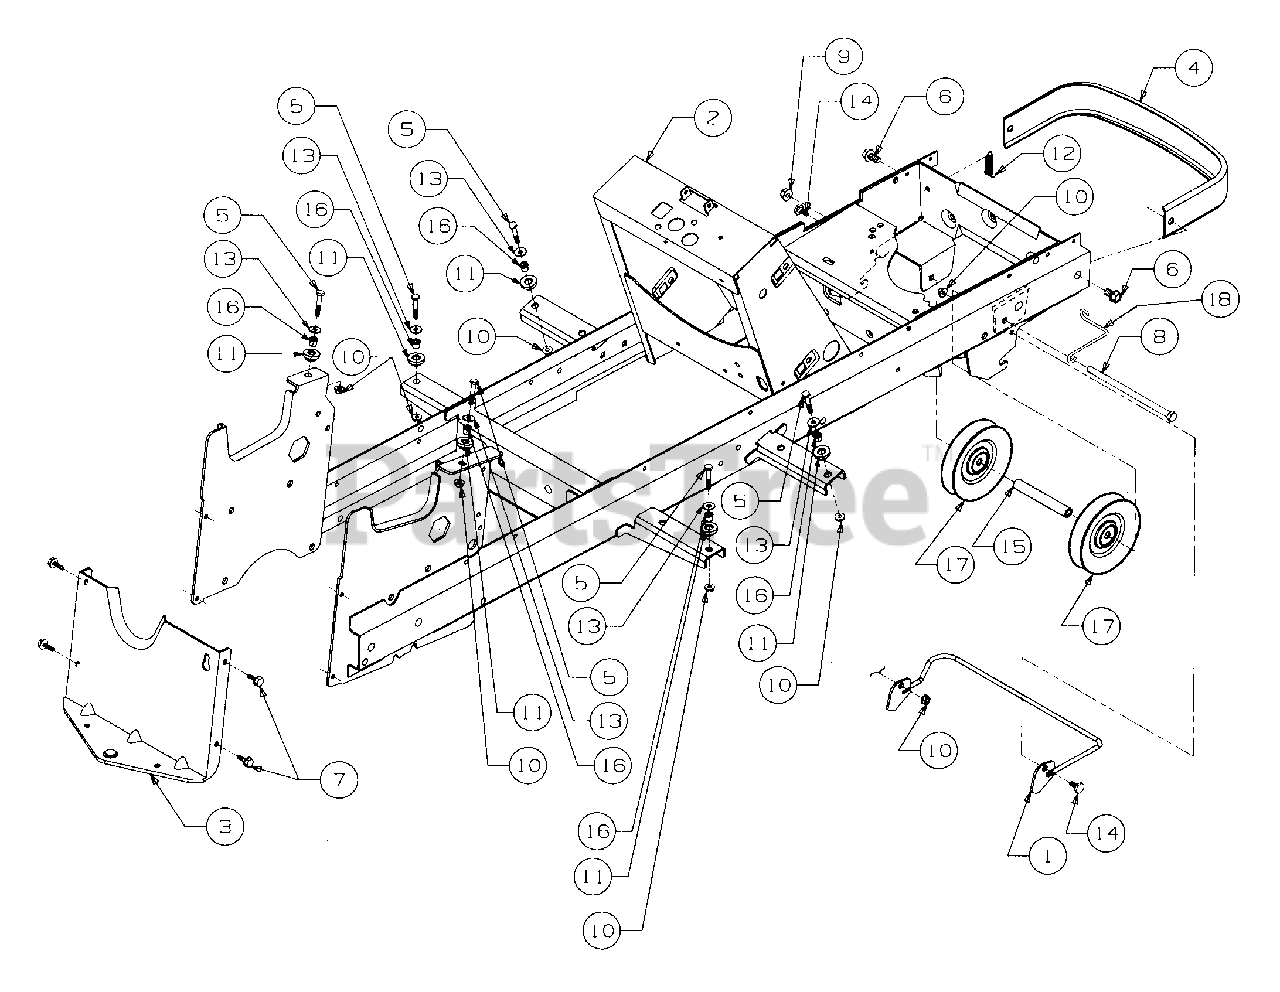 Cub Cadet Parts On The Frame And Drawbar Diagram For 2166  13a-214g100